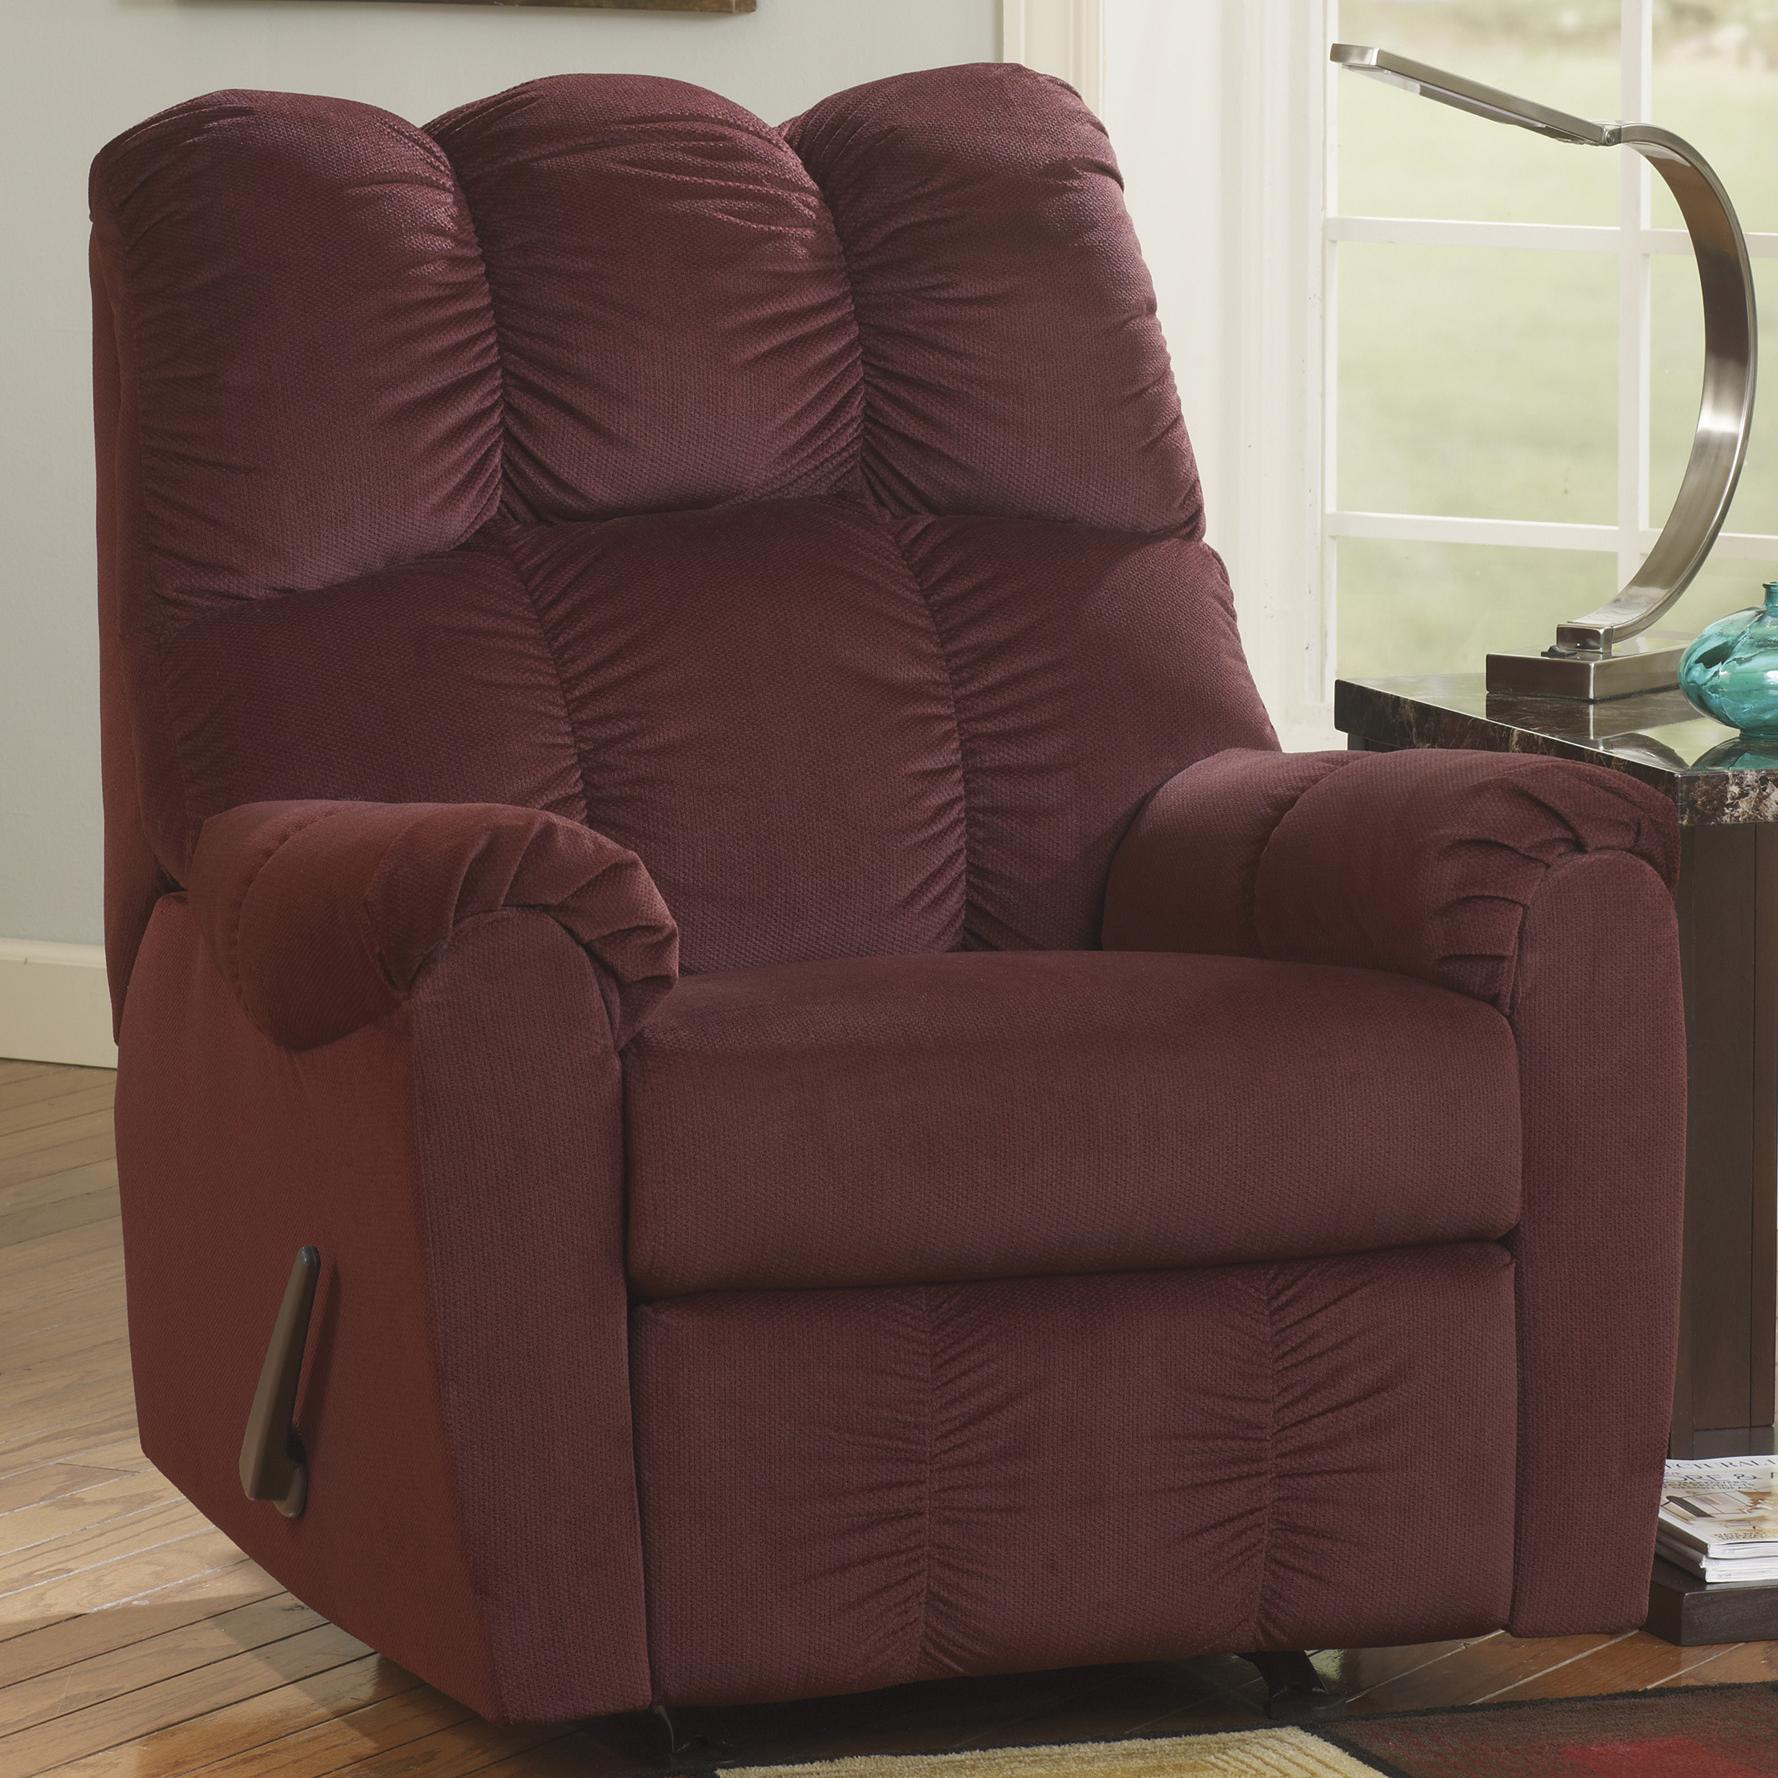 Signature Design by Ashley Raulo - Burgundy Rocker Recliner - Item Number: 1750325